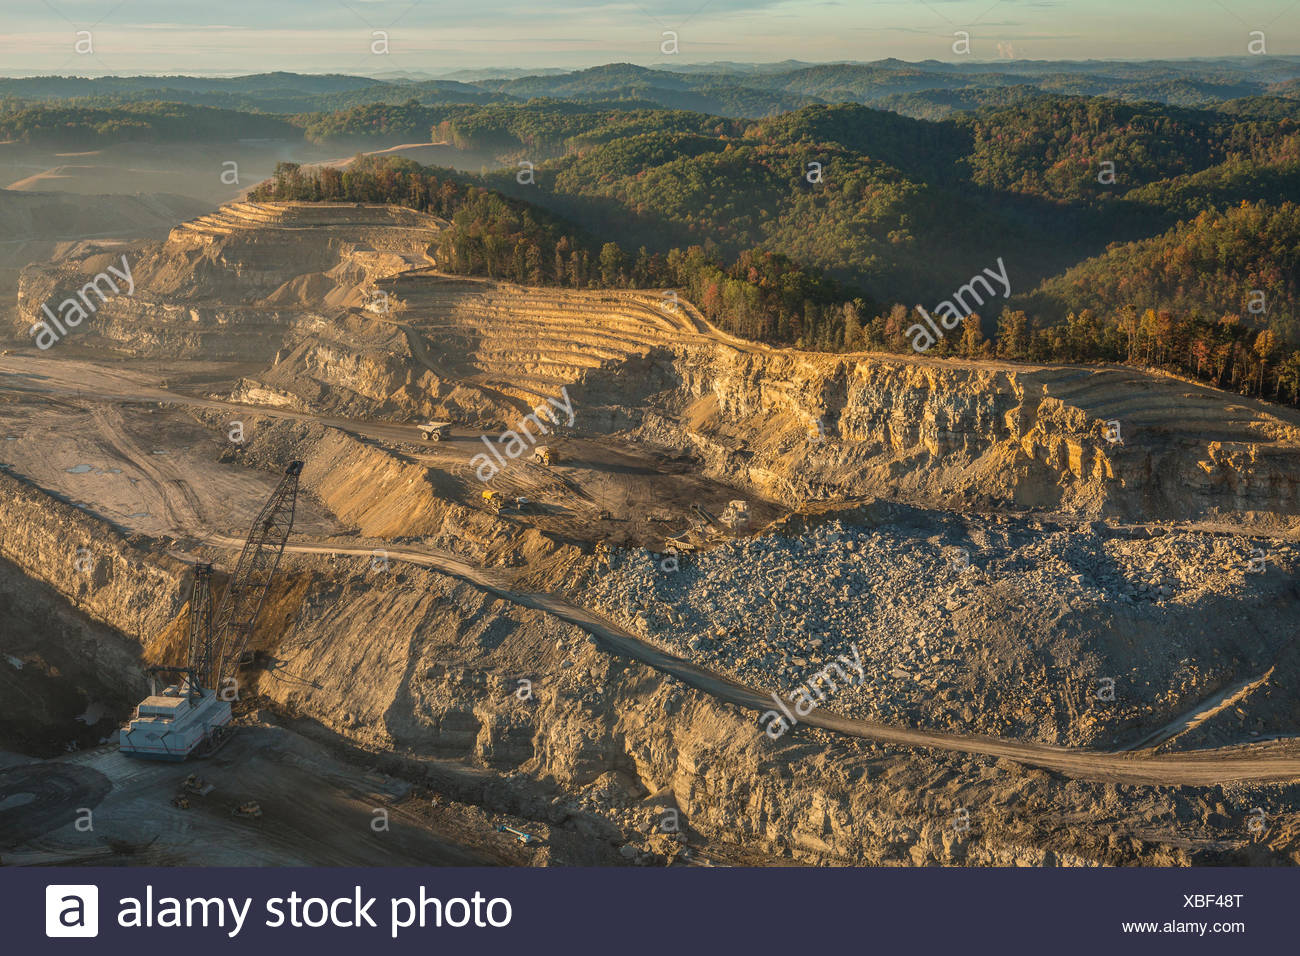 Explosives and heavy equipment are used to remove mountains to get at the seams of coal. - Stock Image